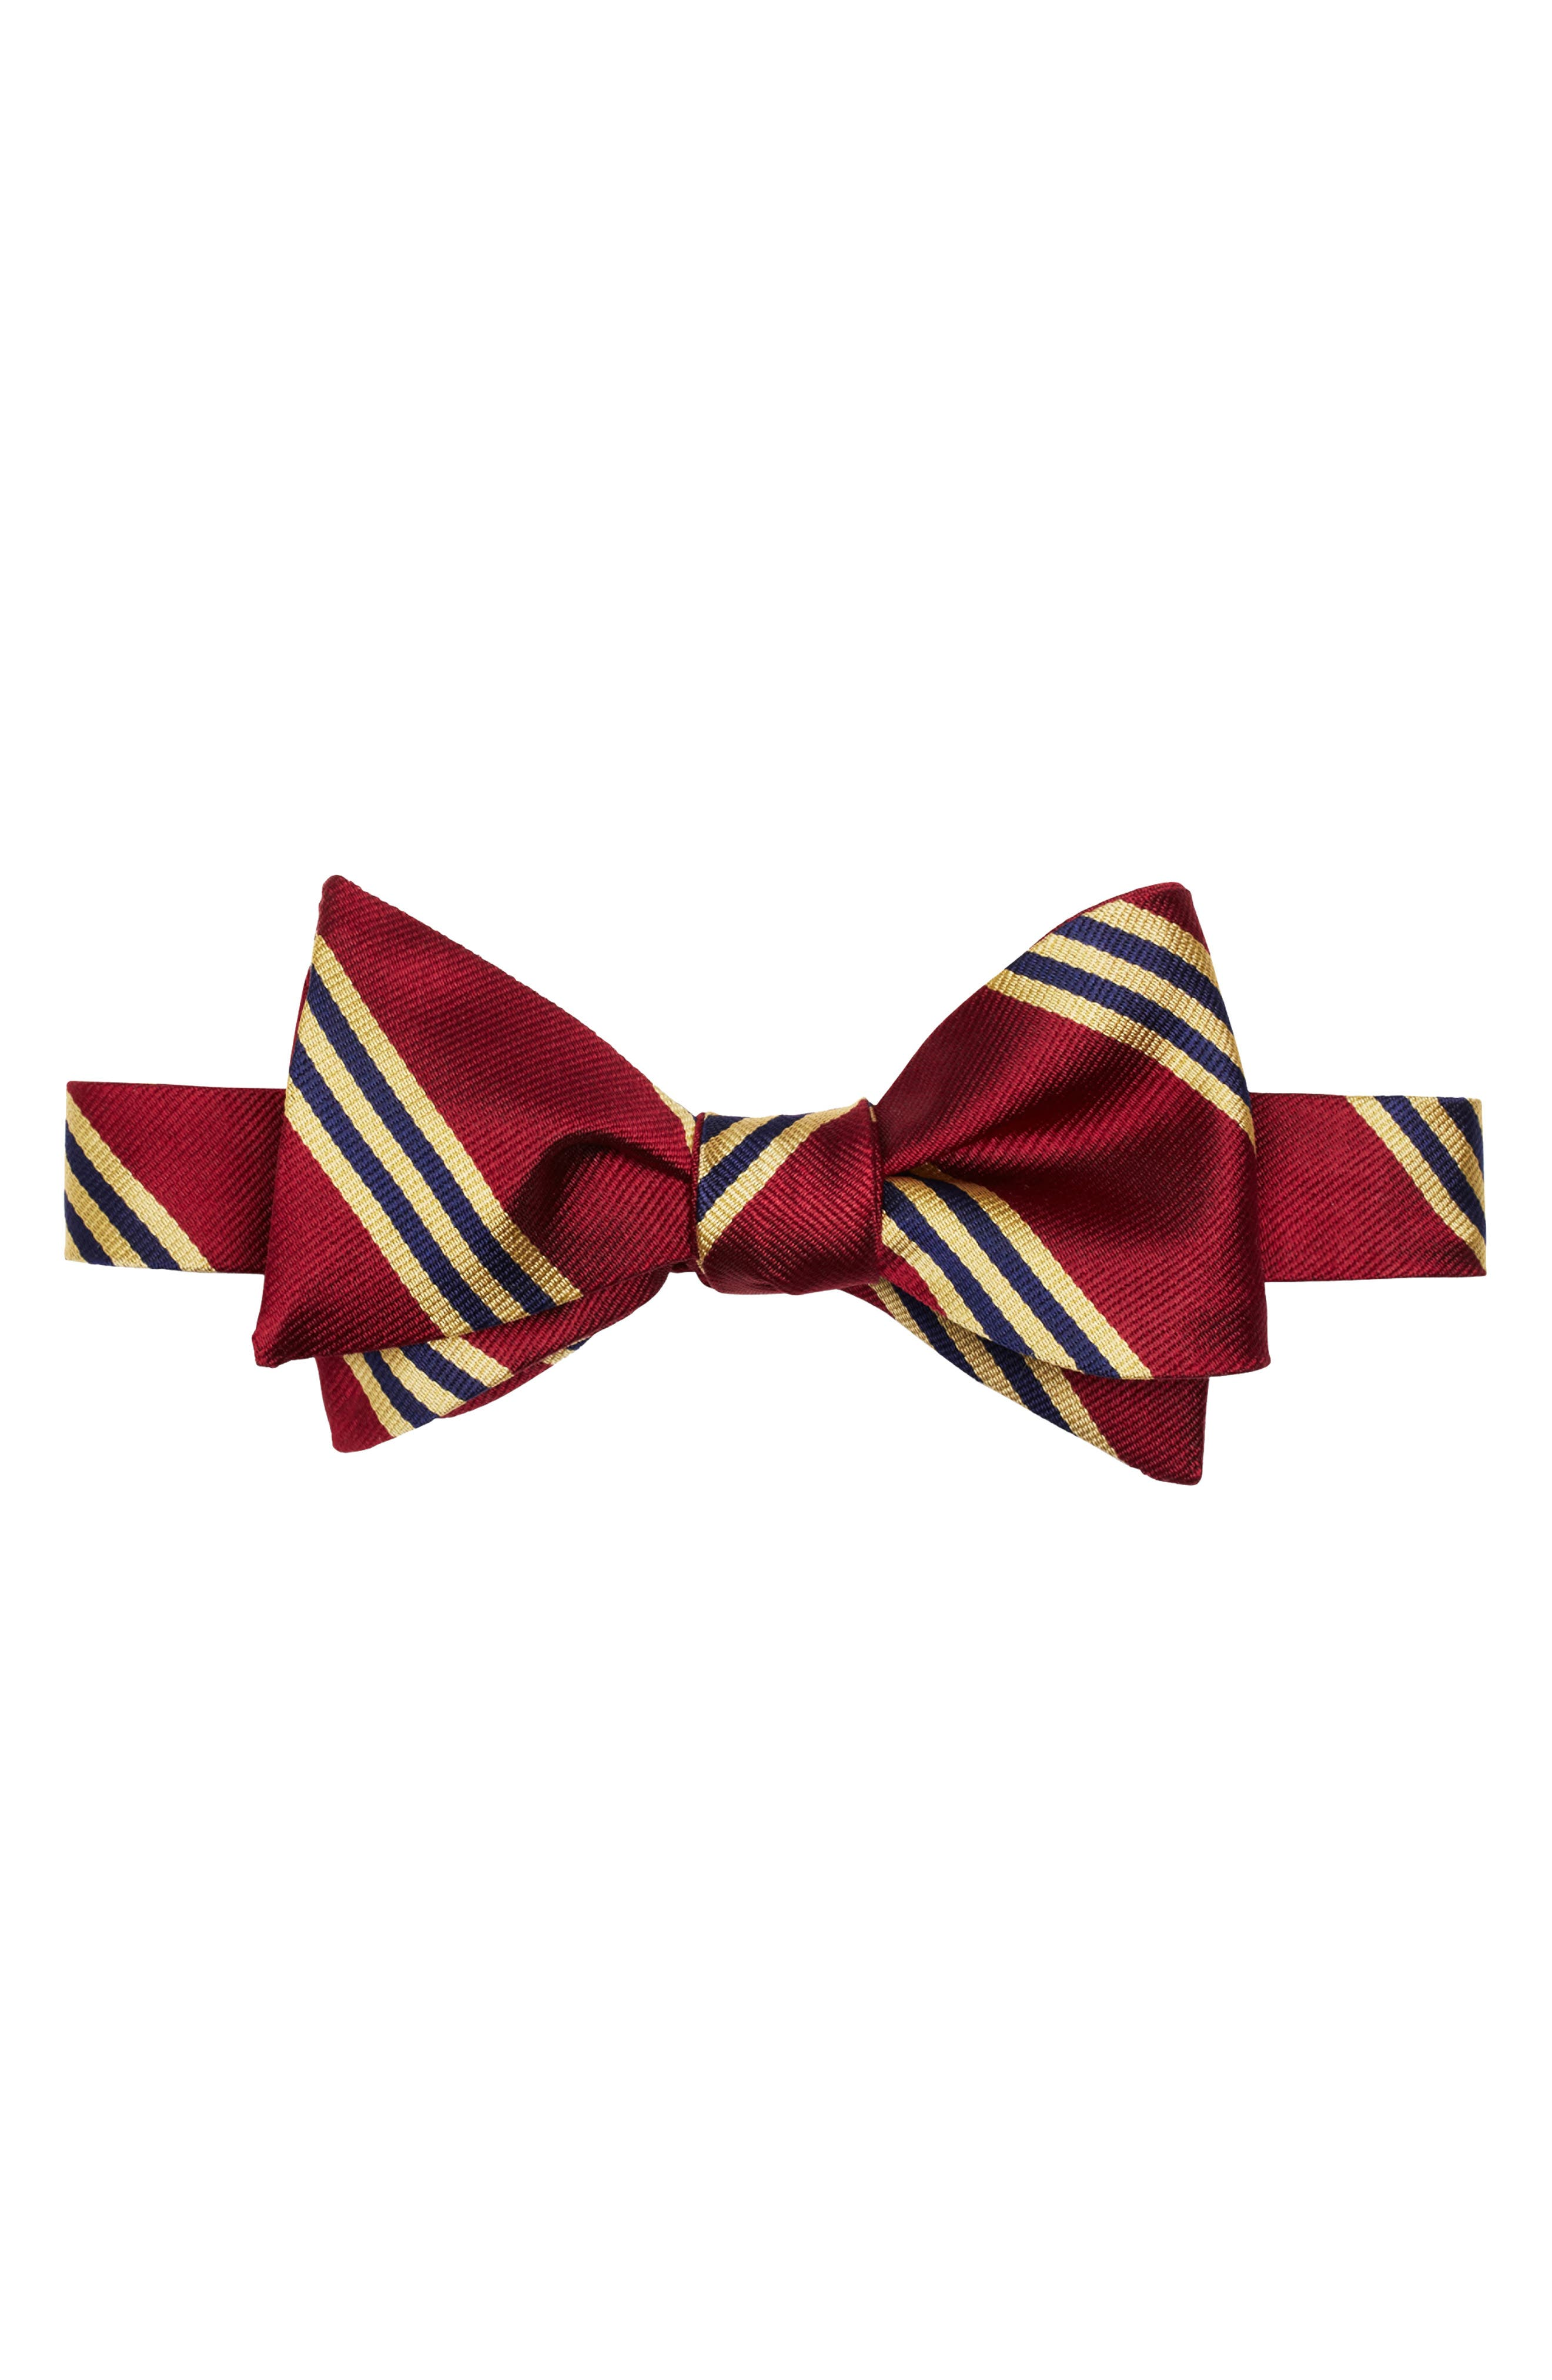 Edwardian Men's Fashion & Clothing Mens Brooks Brothers Silk Stripe Bow Tie $59.50 AT vintagedancer.com